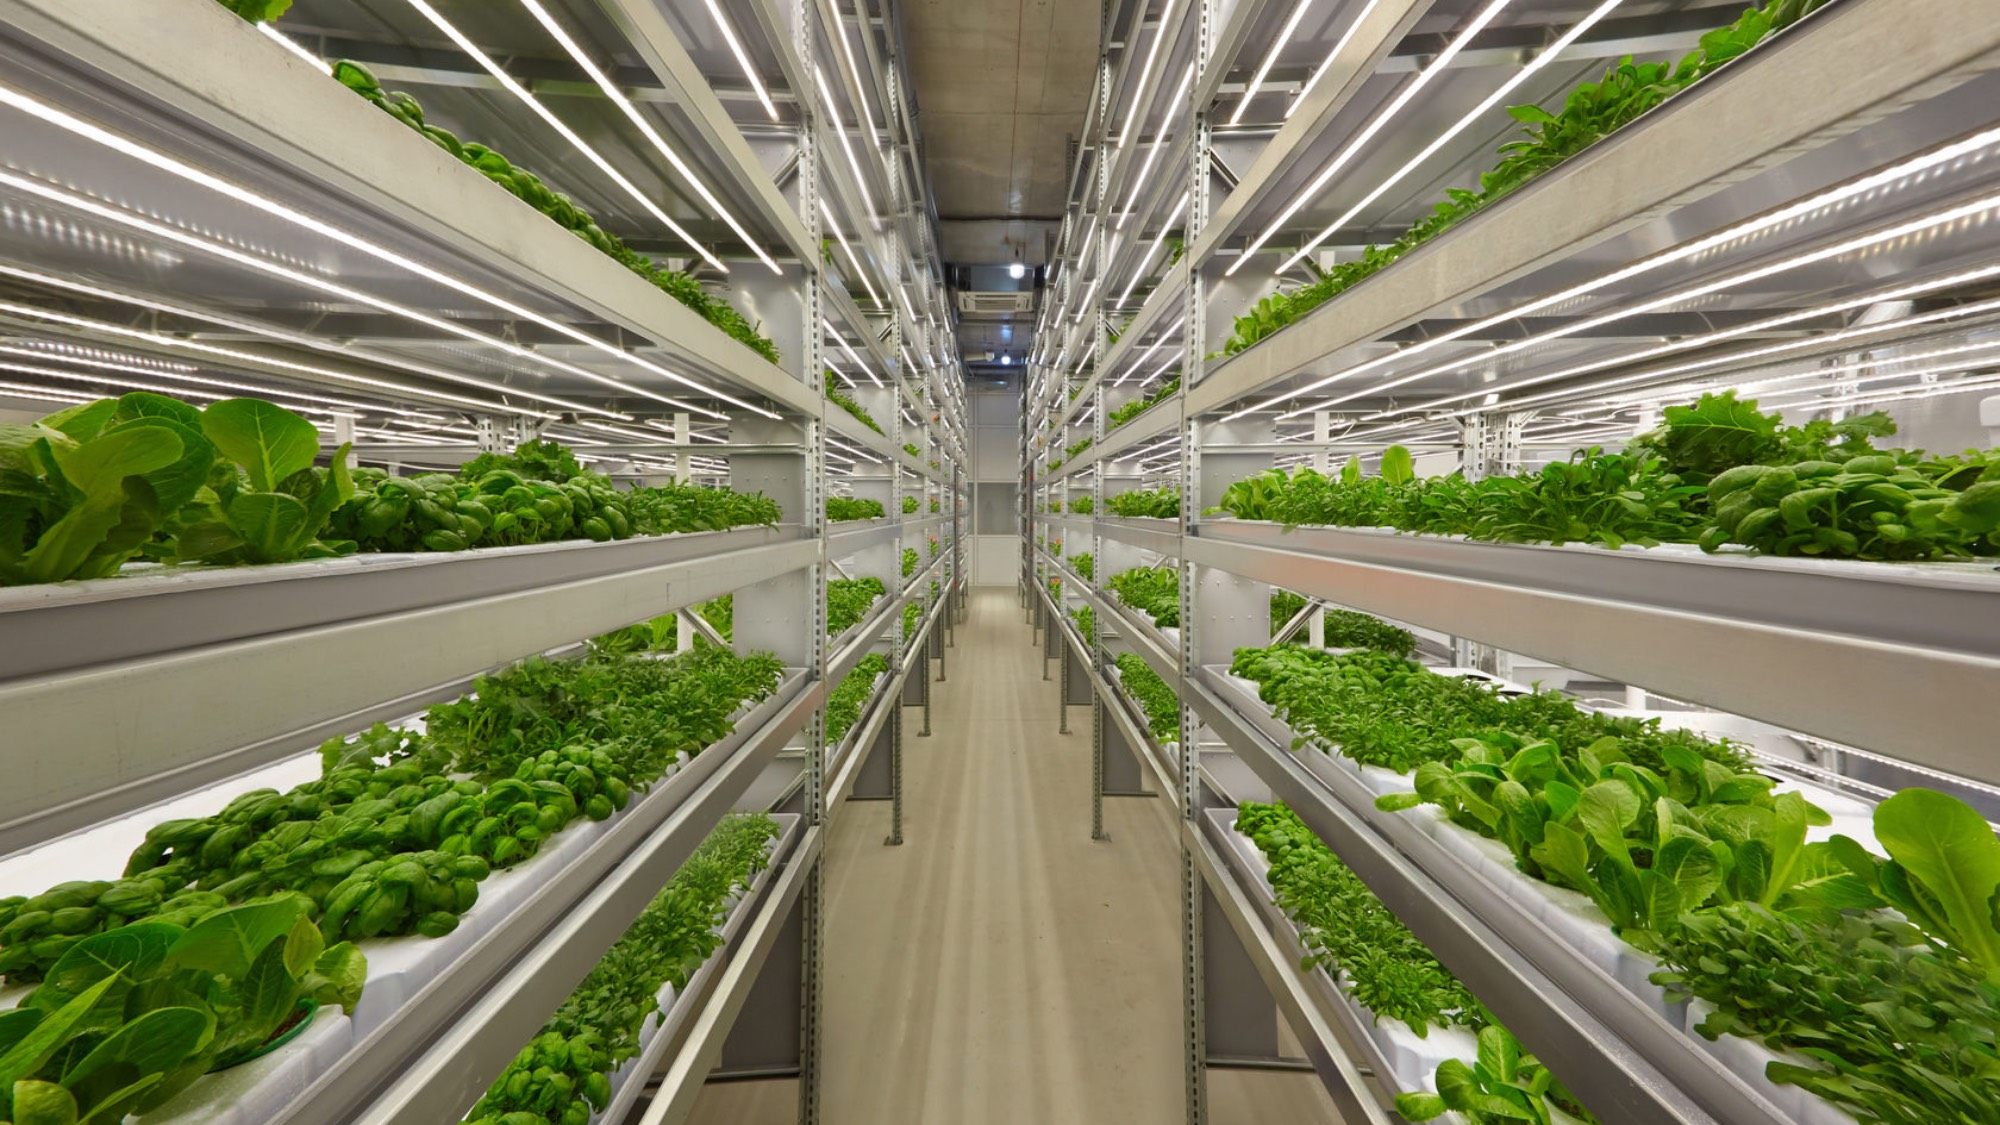 A vertical farm with plants growing on shelves